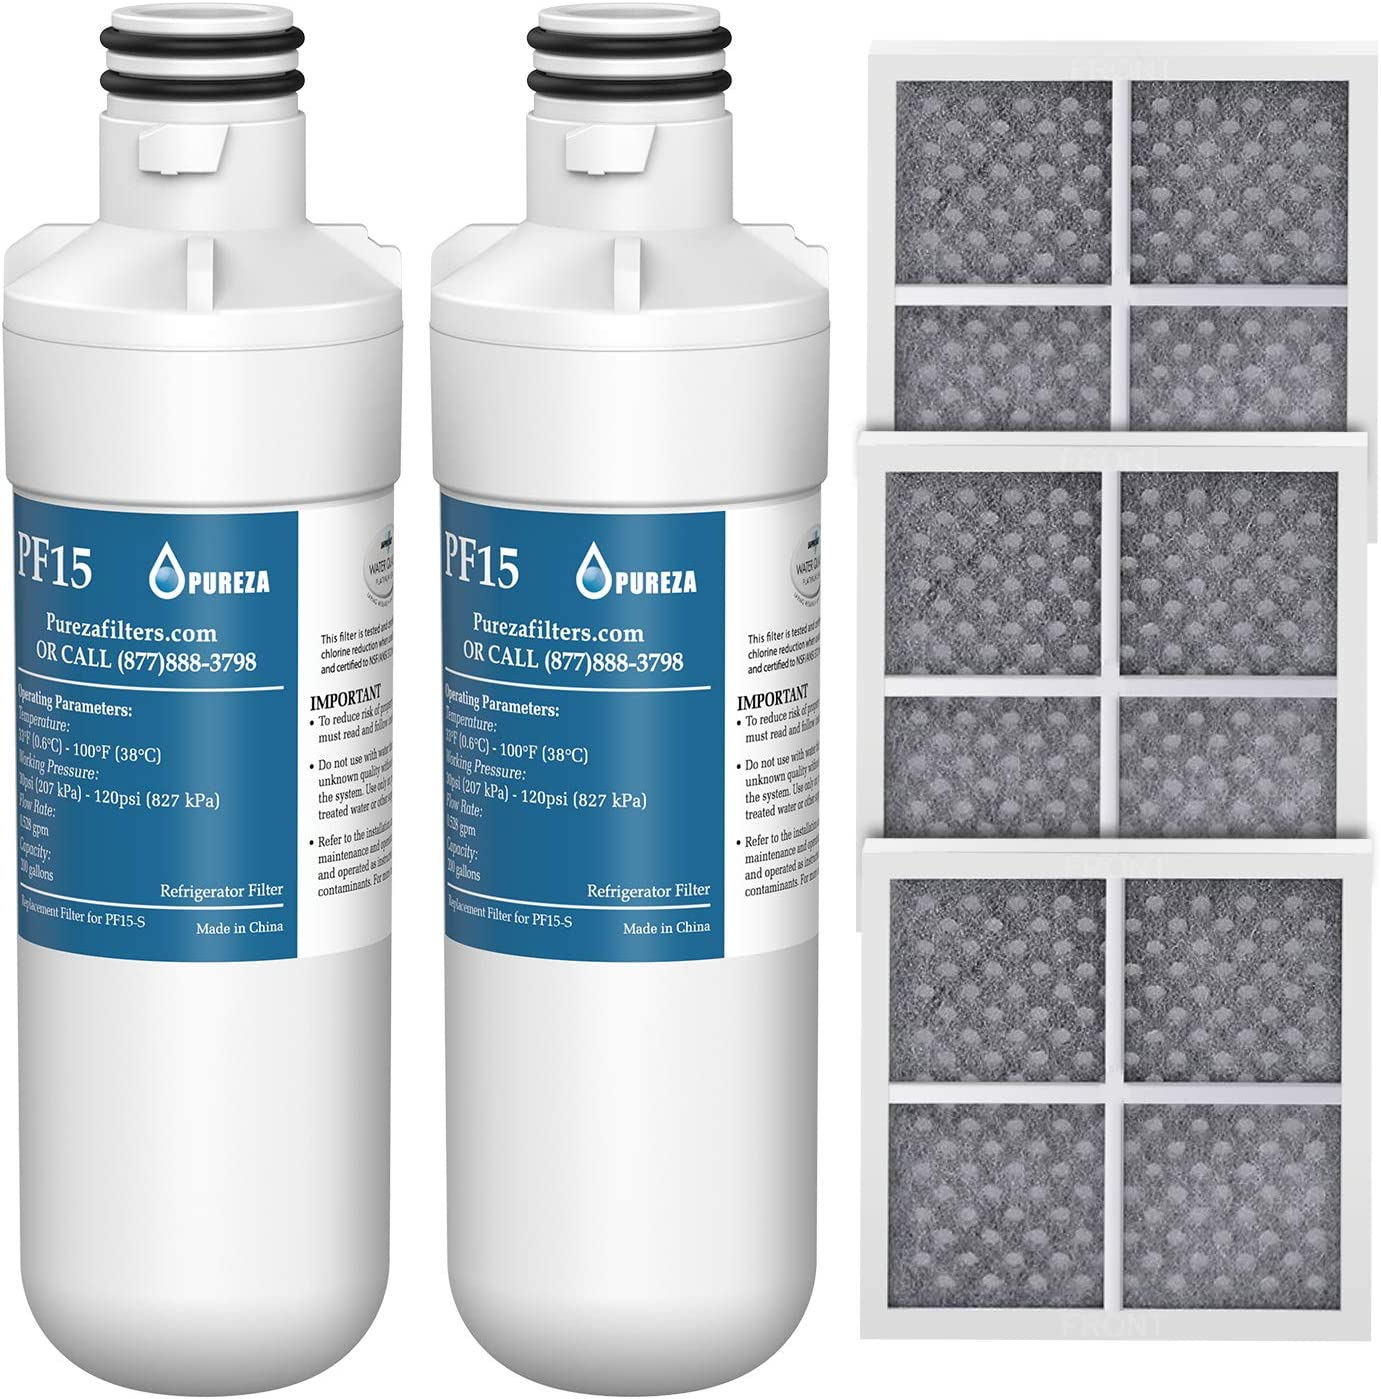 LT1000P Refrigerator Water Filter and Air Filter, Compatible with LG LT1000P, LT1000PC, MDJ64844601, ADQ747935, Kenmore 46-9980, and LG LT120F, ADQ73214404 Air filter Combo, by Pureza